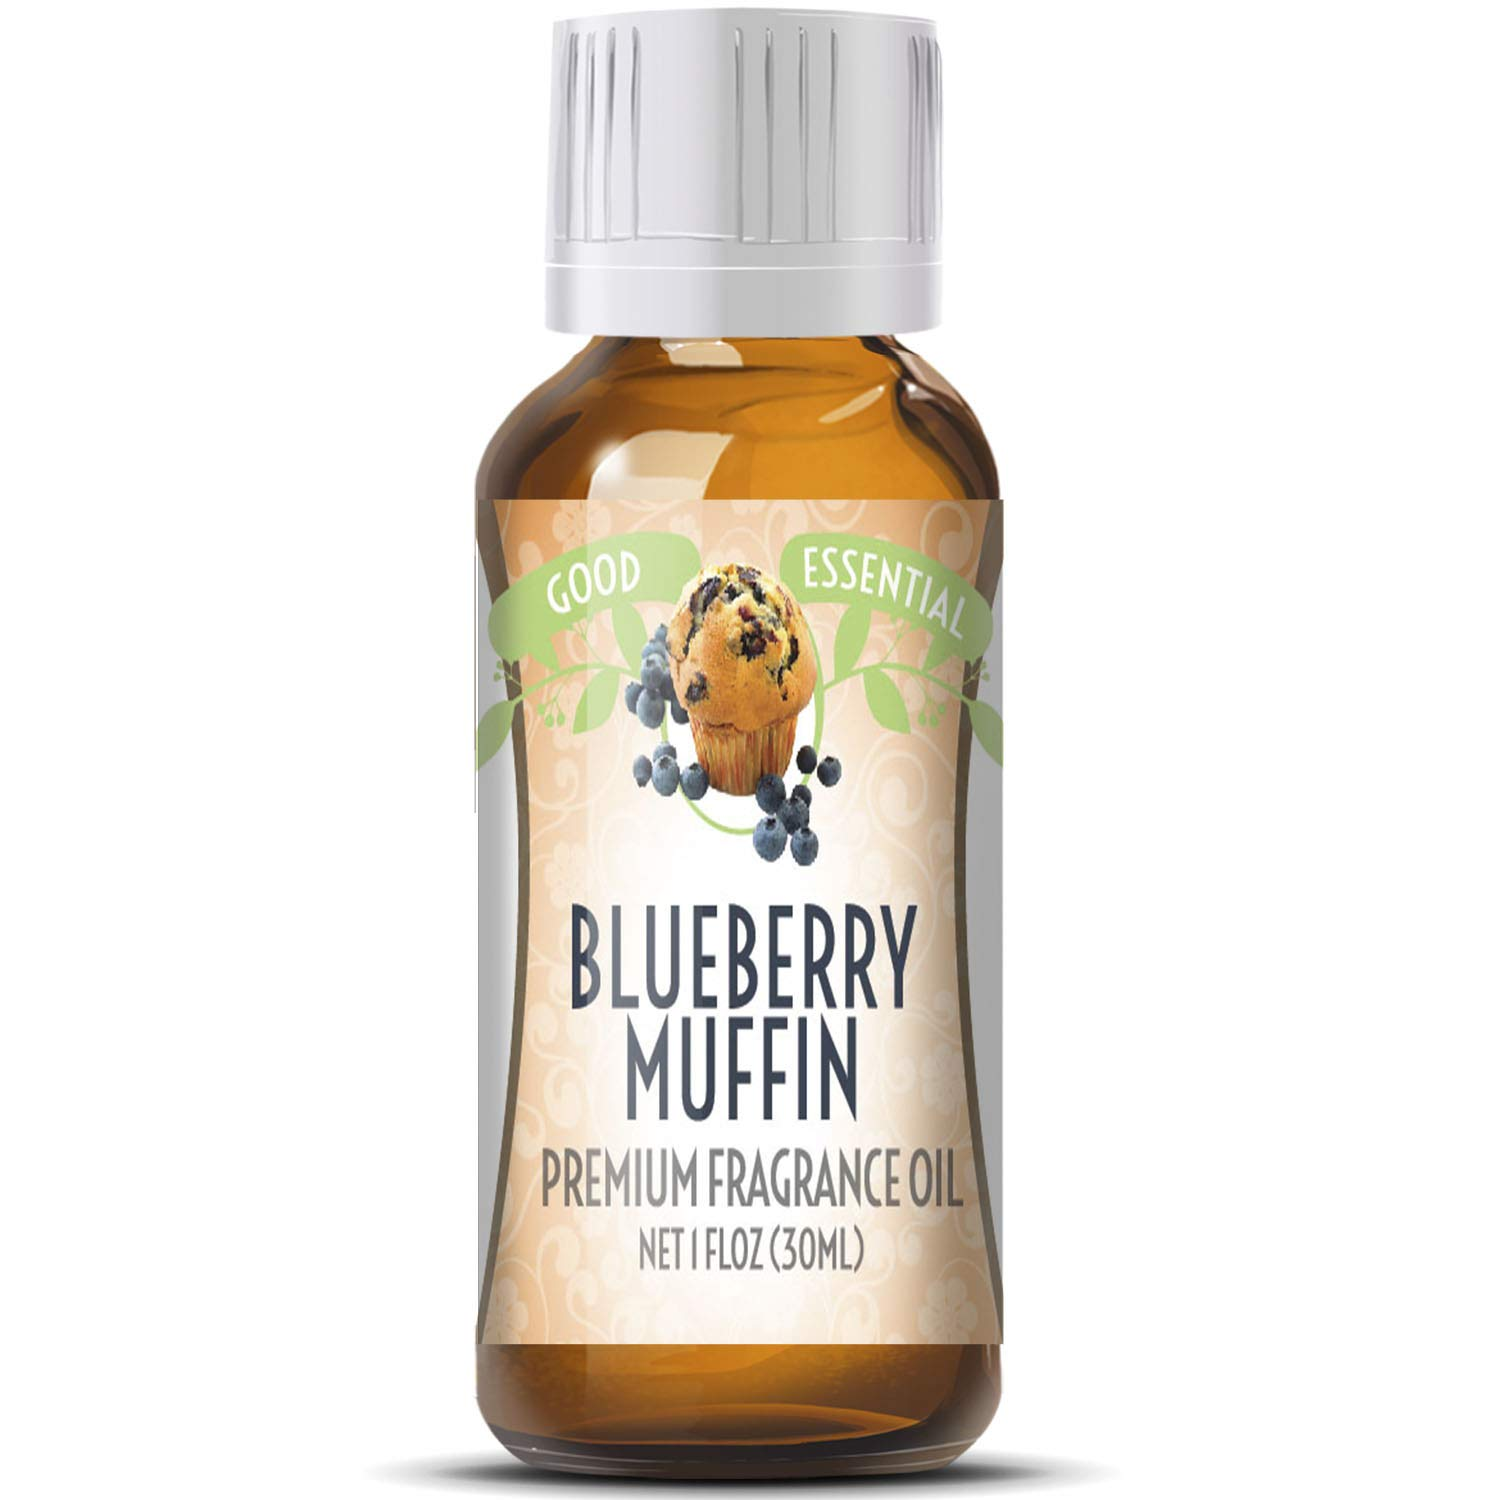 Blueberry Muffin Scented Oil by Good Essential (Huge 1oz Bottle - Premium Grade Fragrance Oil) - Perfect for Aromatherapy, Soaps, Candles, Slime, Lotions, and More!